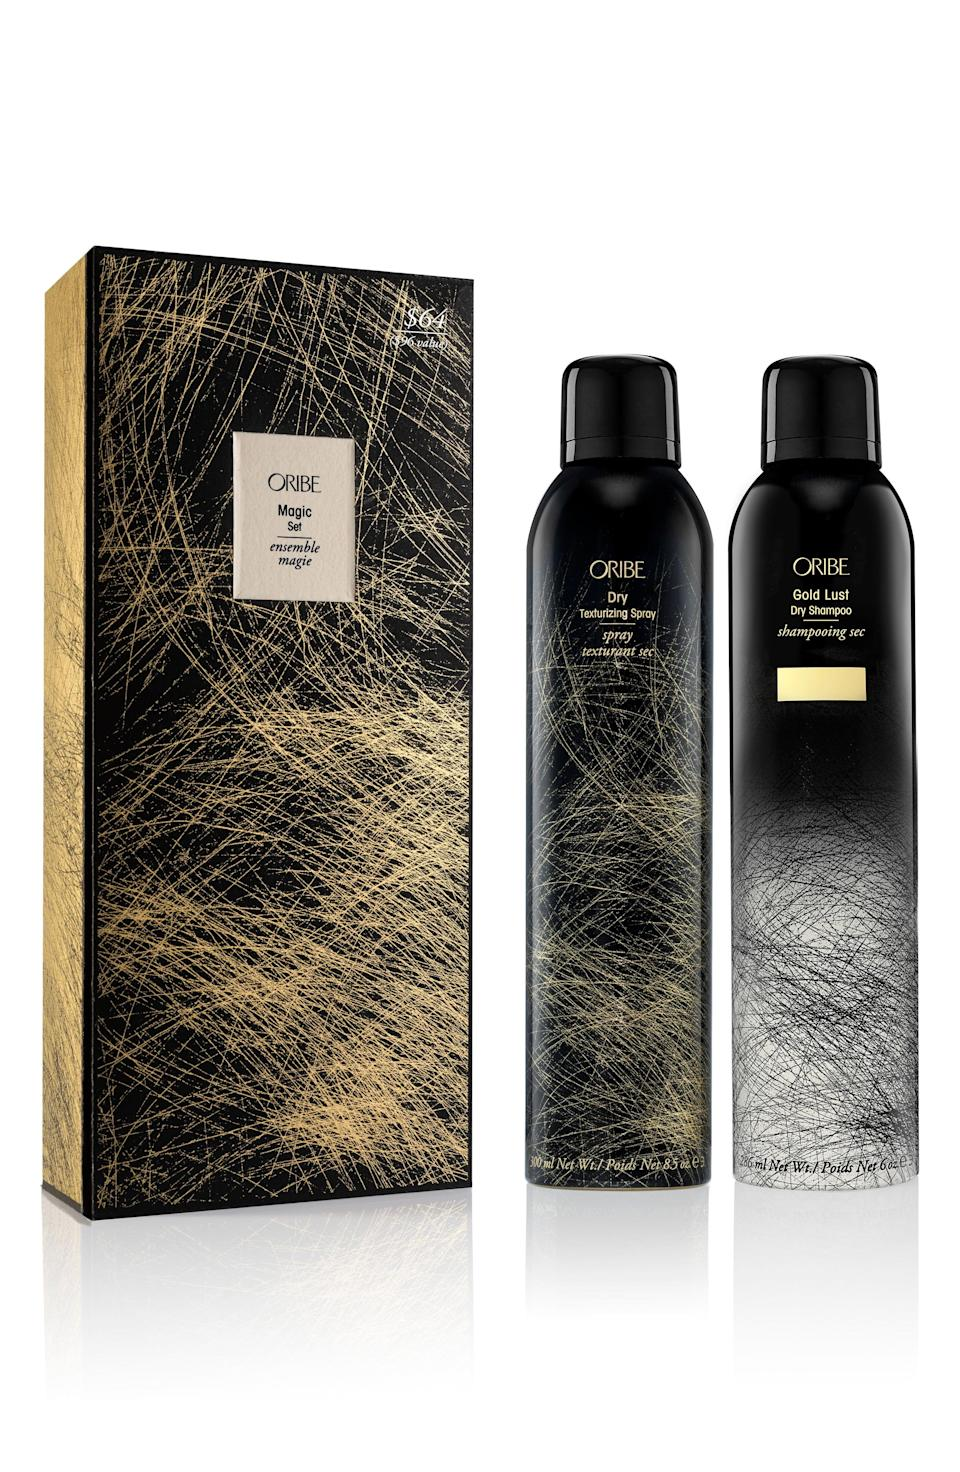 "<p><strong>ORIBE</strong></p><p>nordstrom.com</p><p><strong>$64.00</strong></p><p><a href=""https://go.redirectingat.com?id=74968X1596630&url=https%3A%2F%2Fwww.nordstrom.com%2Fs%2Foribe-full-size-gold-lust-dry-shampoo-dry-texturizing-spray-set-96-value%2F5580707&sref=https%3A%2F%2Fwww.townandcountrymag.com%2Fstyle%2Fbeauty-products%2Fg33595678%2Fbeauty-buys-to-pick-up-during-the-2020-nordstrom-anniversary-sale%2F"" rel=""nofollow noopener"" target=""_blank"" data-ylk=""slk:Shop Now"" class=""link rapid-noclick-resp"">Shop Now</a></p><p><em>Value: $96</em></p>"